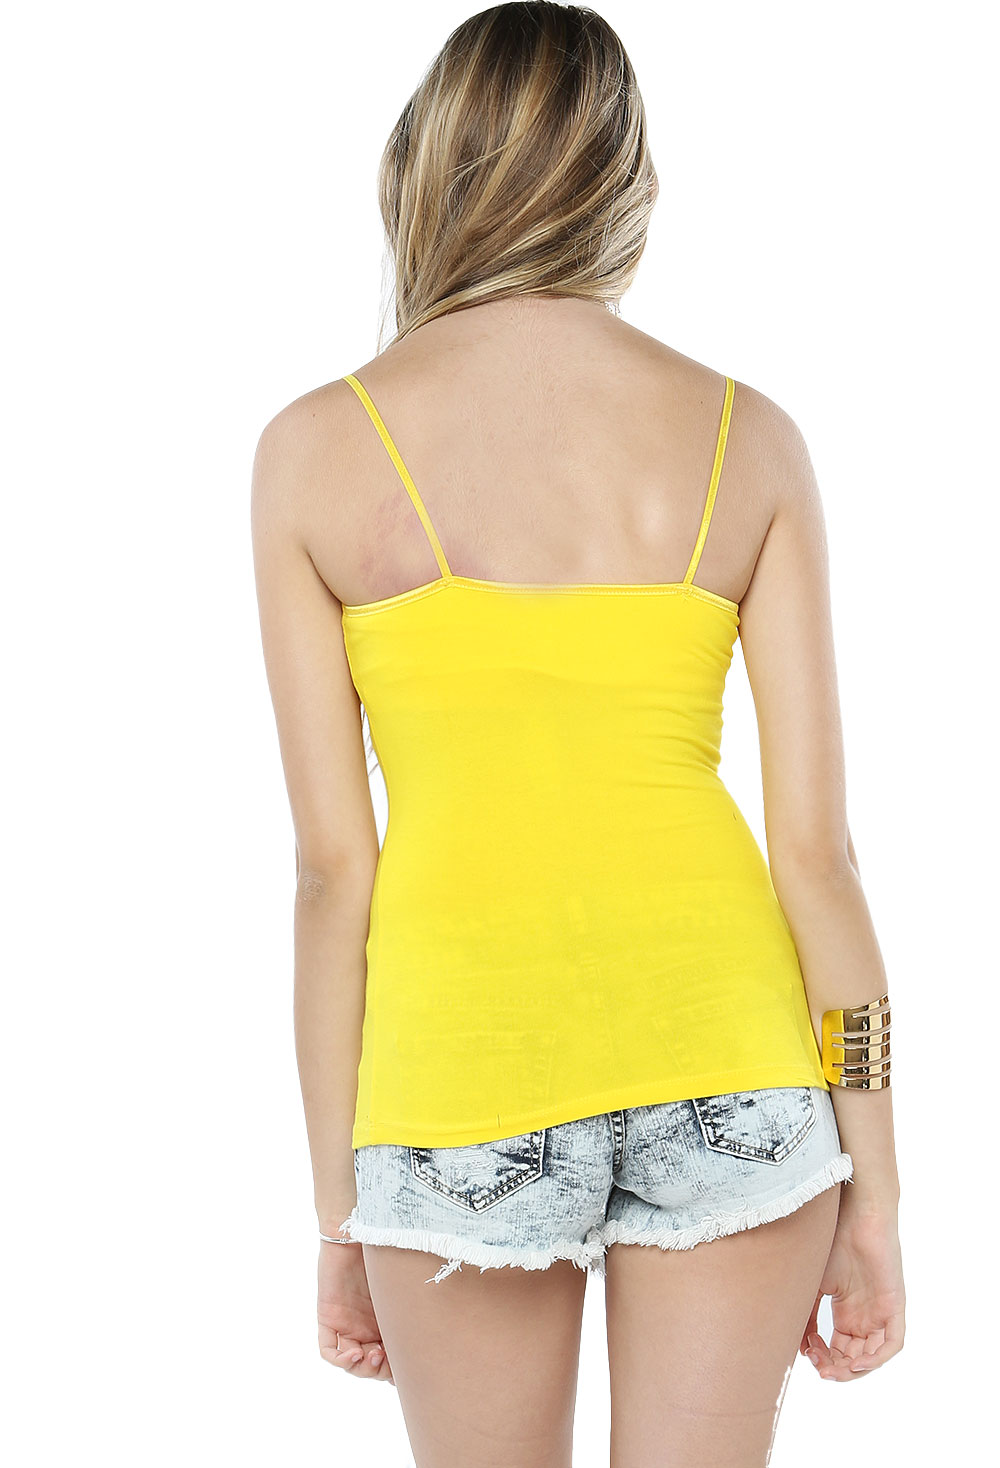 Built In Bra Basic Cotton Cami Top Shop Basic Tops At